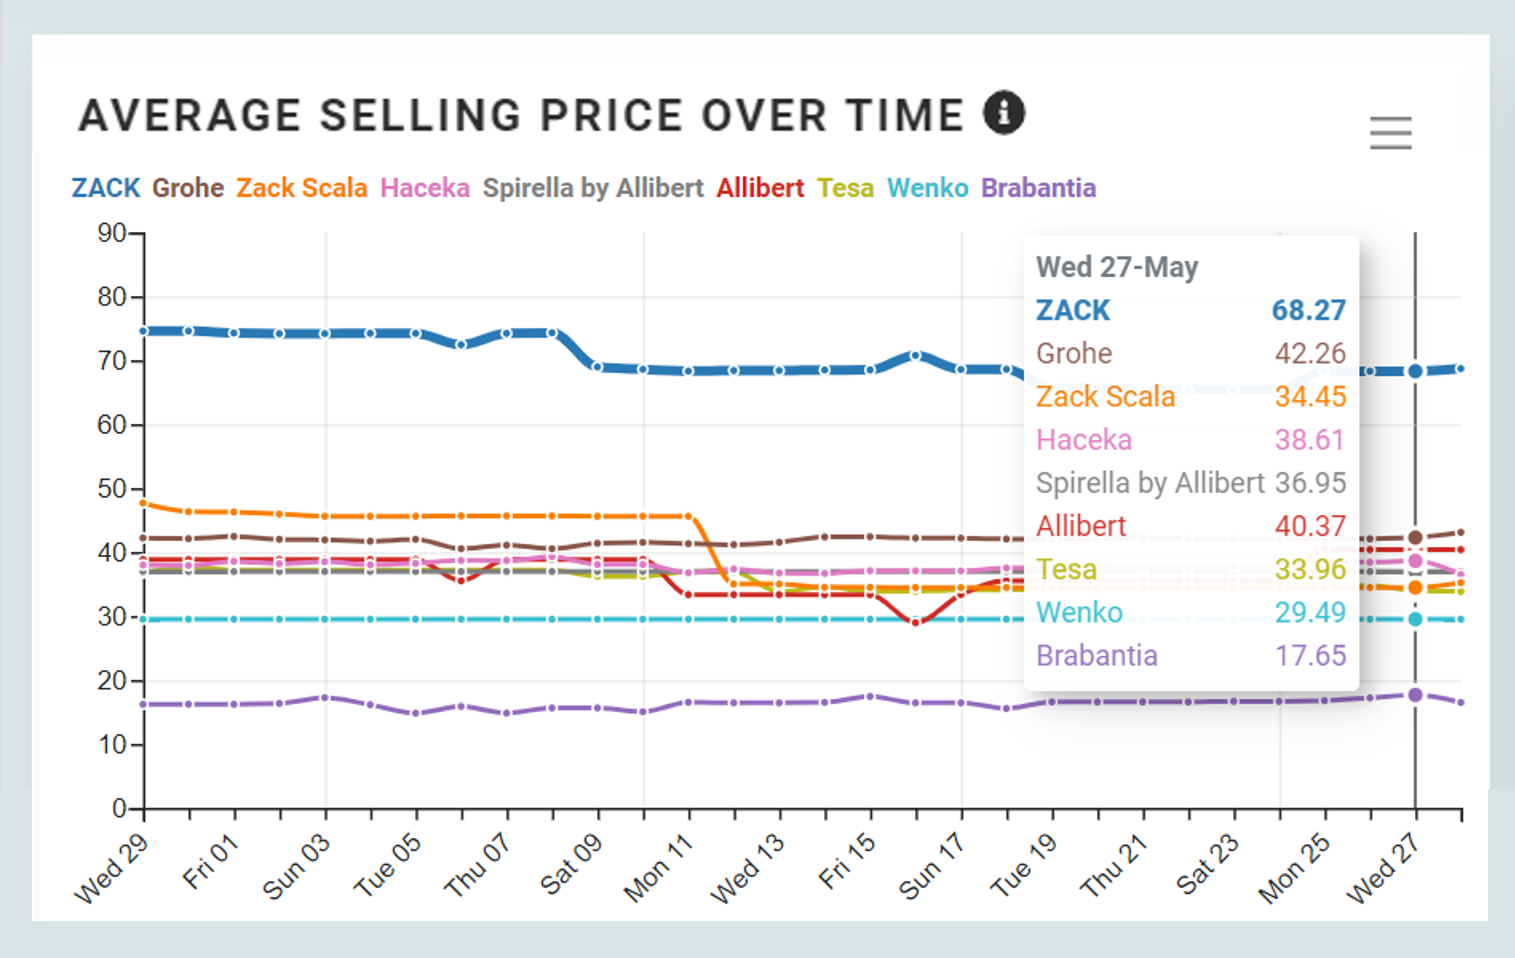 selling price over time per brand competitors-1